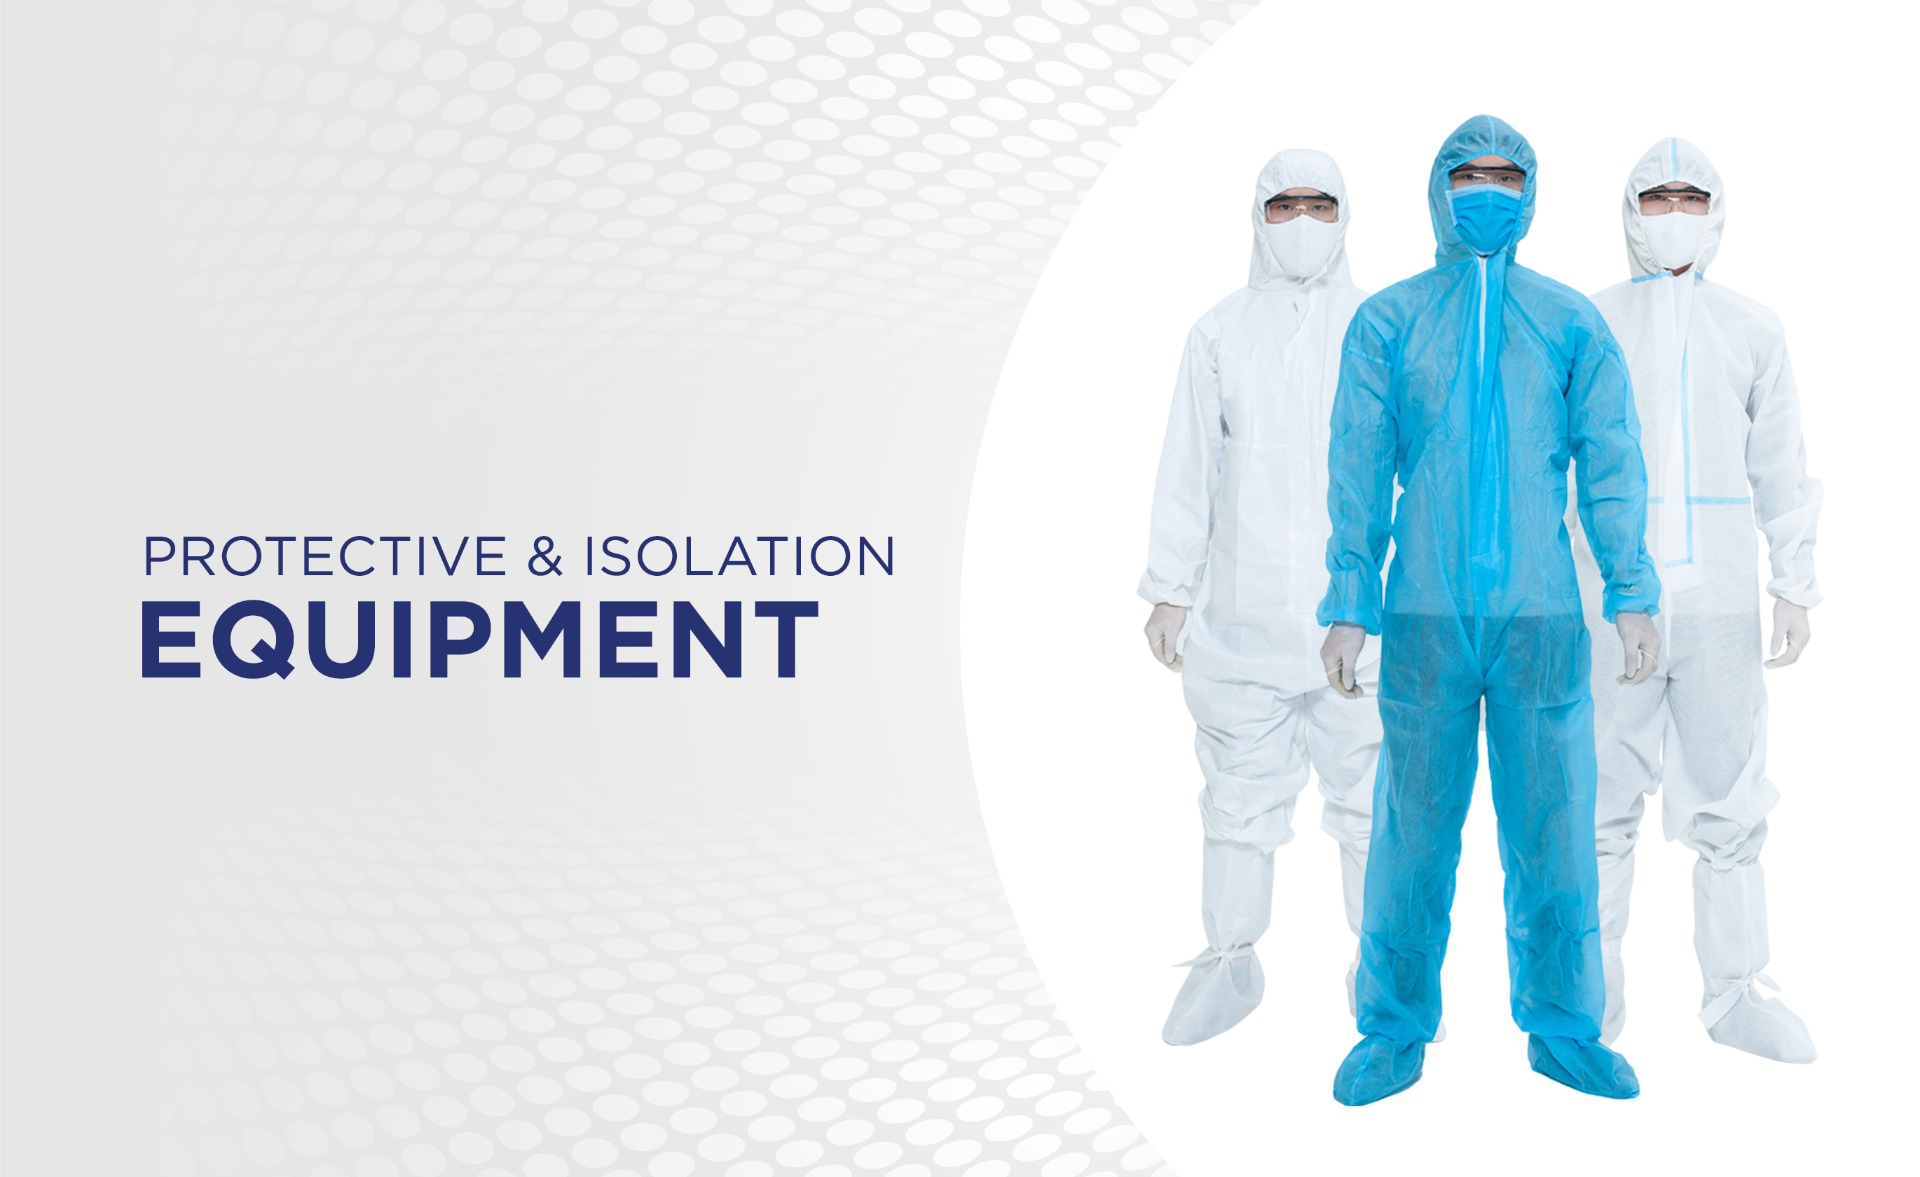 PPE personal equipment